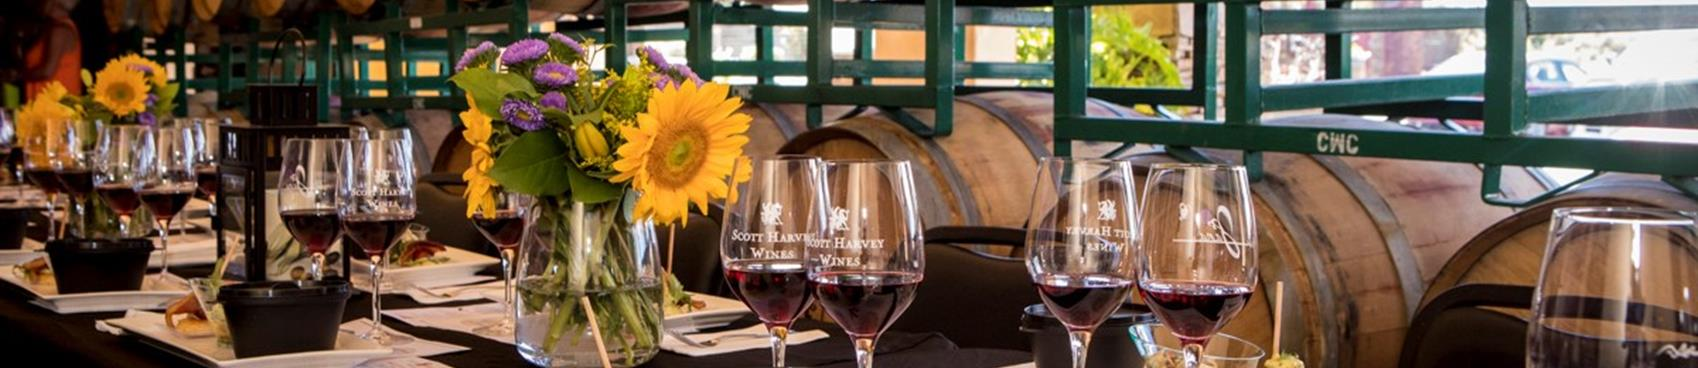 Purchase Tickets to October 3&3 Wine and Food Pairing at Scott Harvey Wines on CellarPass